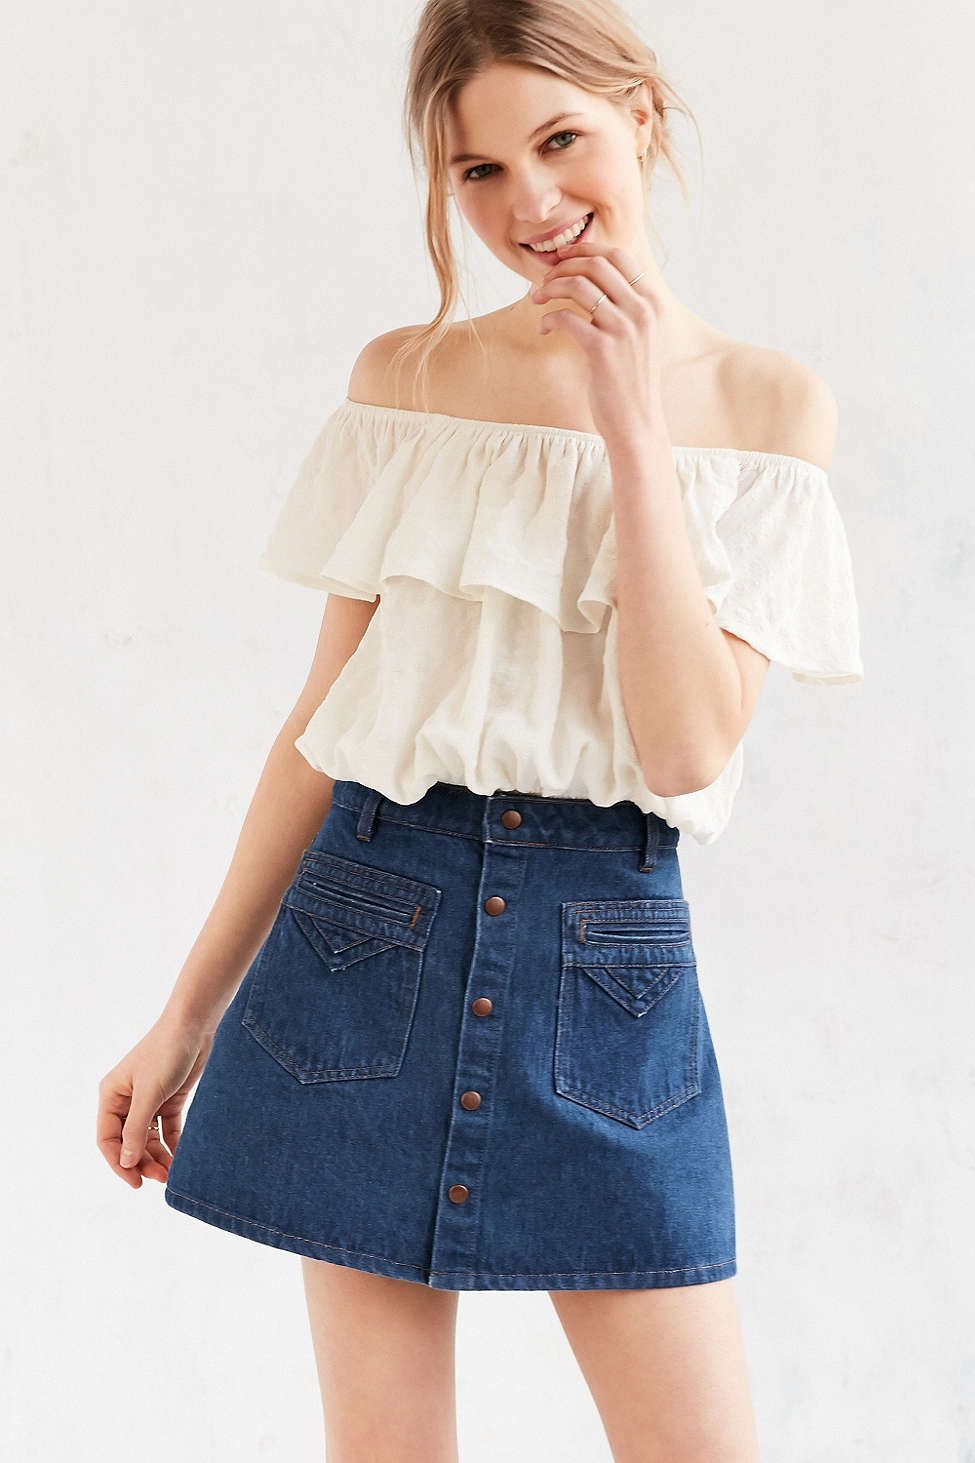 8dcb705e8 Objects Without Meaning For UO Denim Button-Down Mini Skirt - Urban  Outfitters